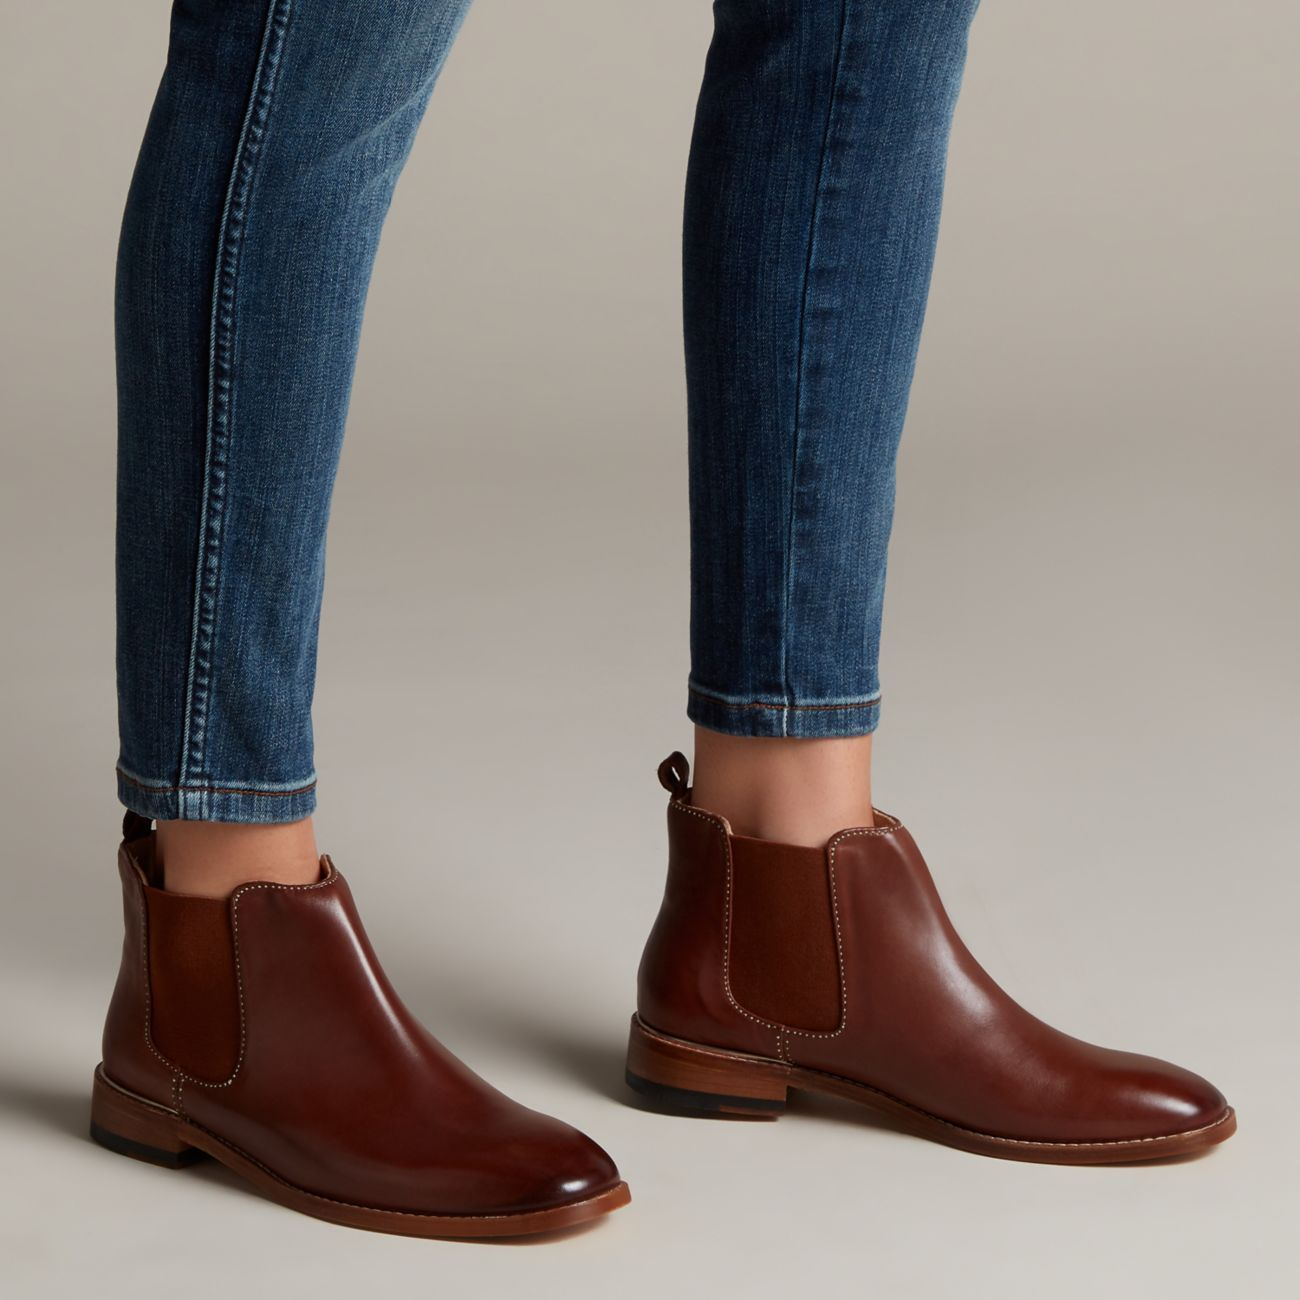 Tan leather ankle boots, Clarks shoes